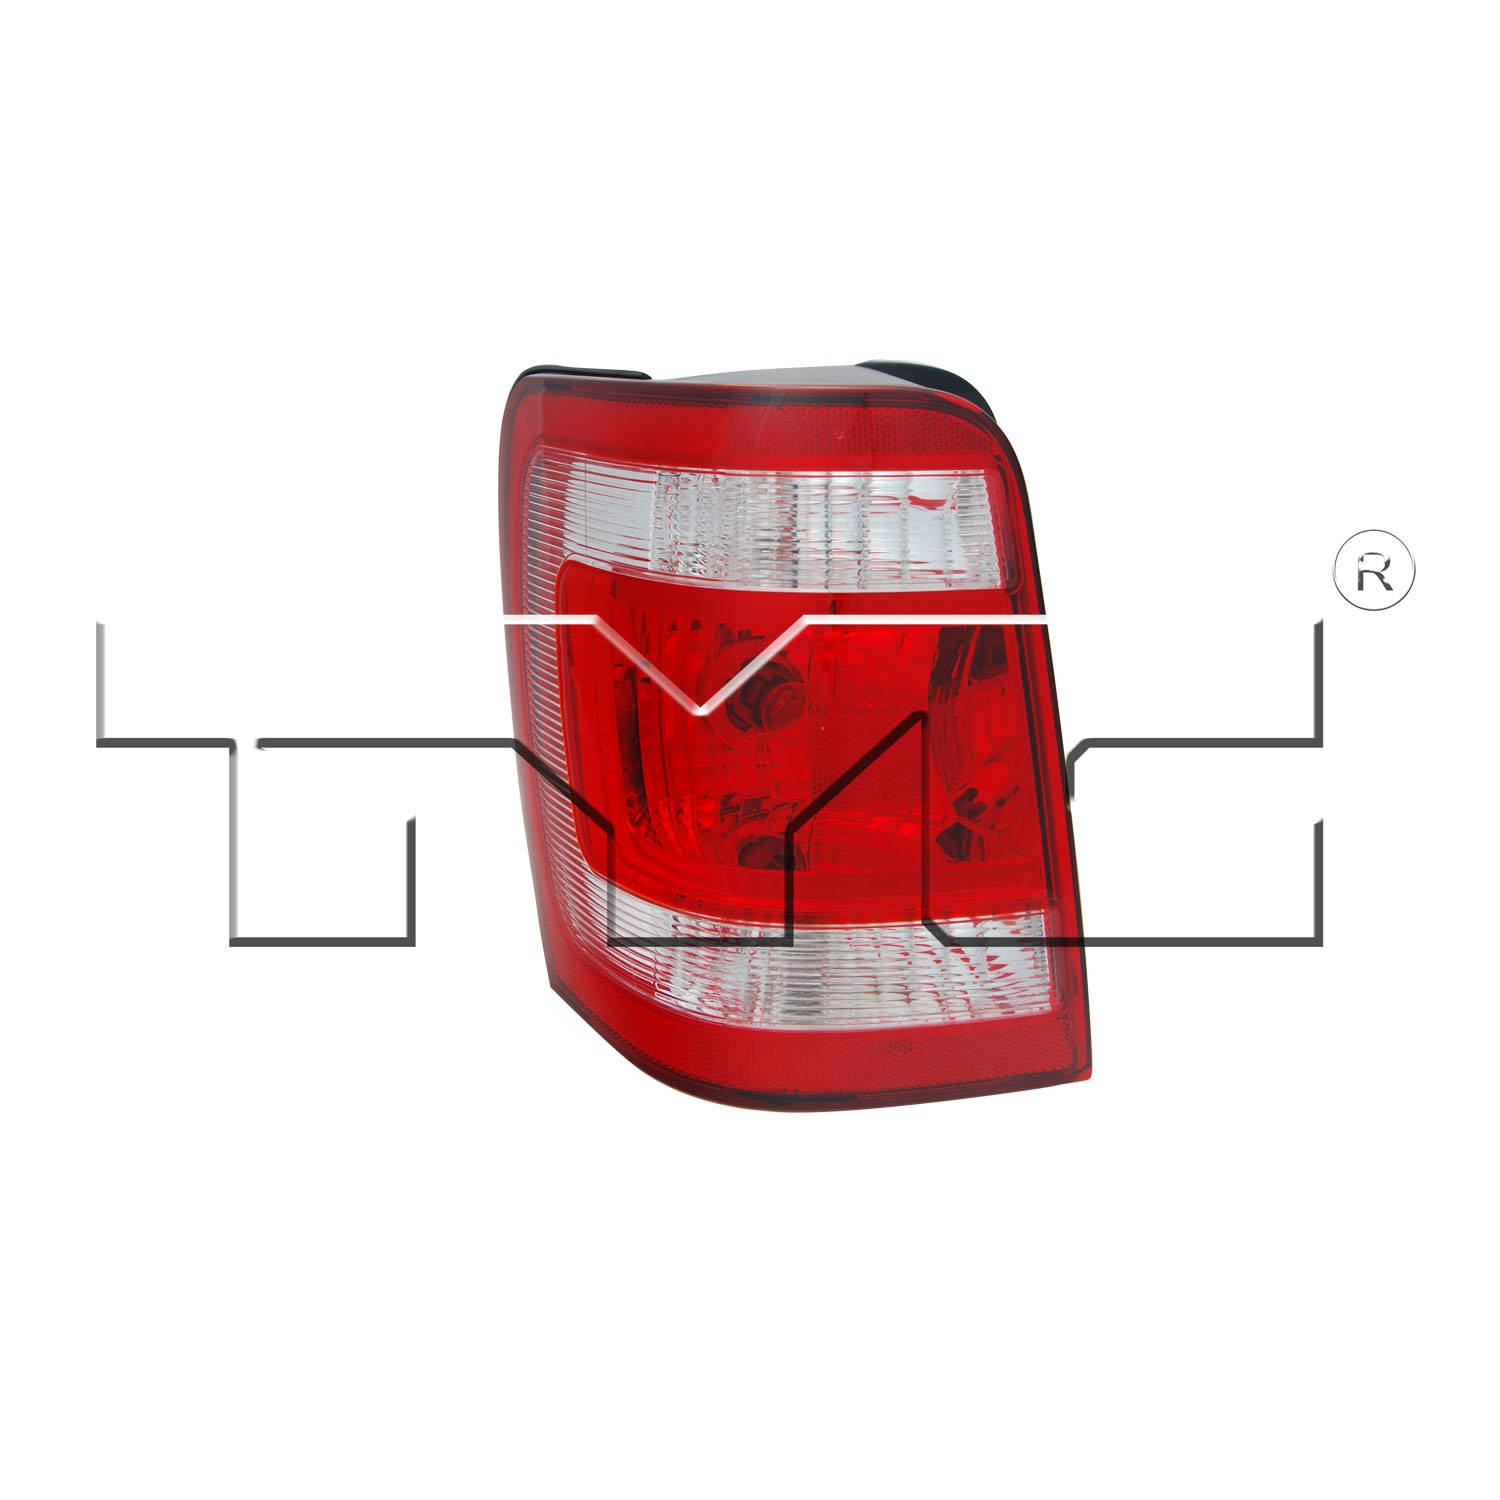 2009 Ford Escape Tail Light Embly Ty 11 6262 01 1